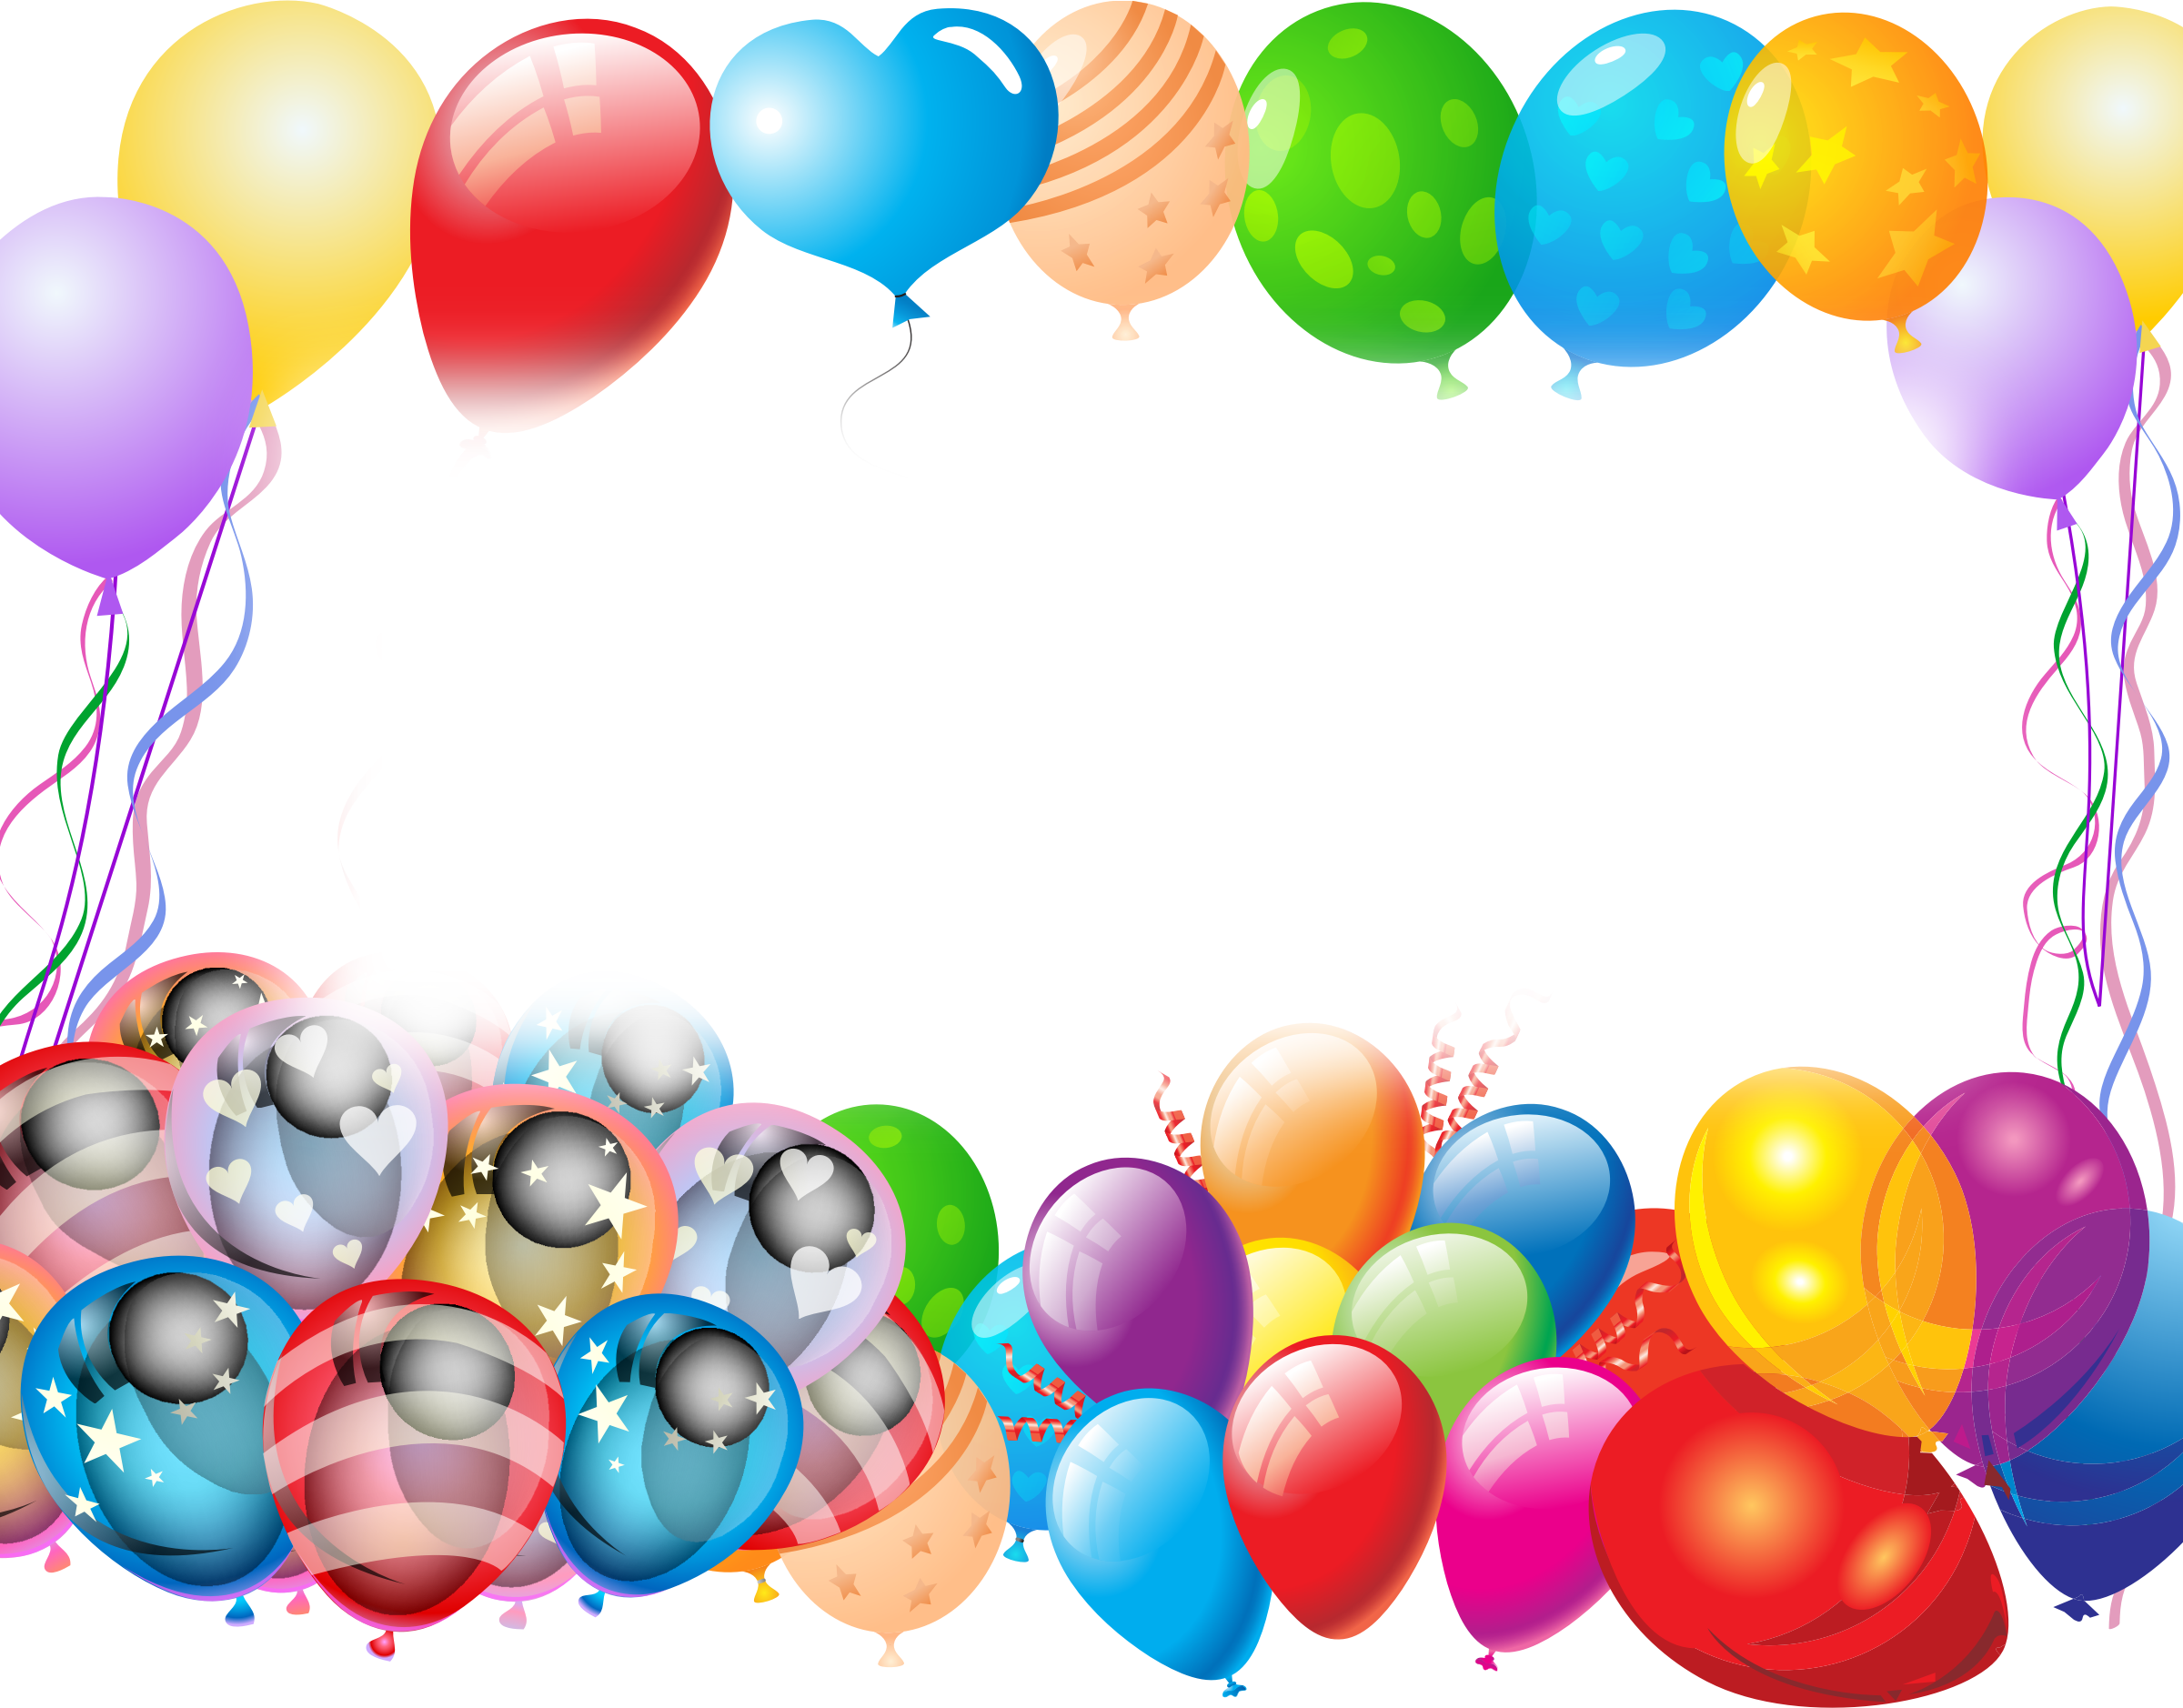 clipart transparent download Office party clipart. Colorful balloons big image